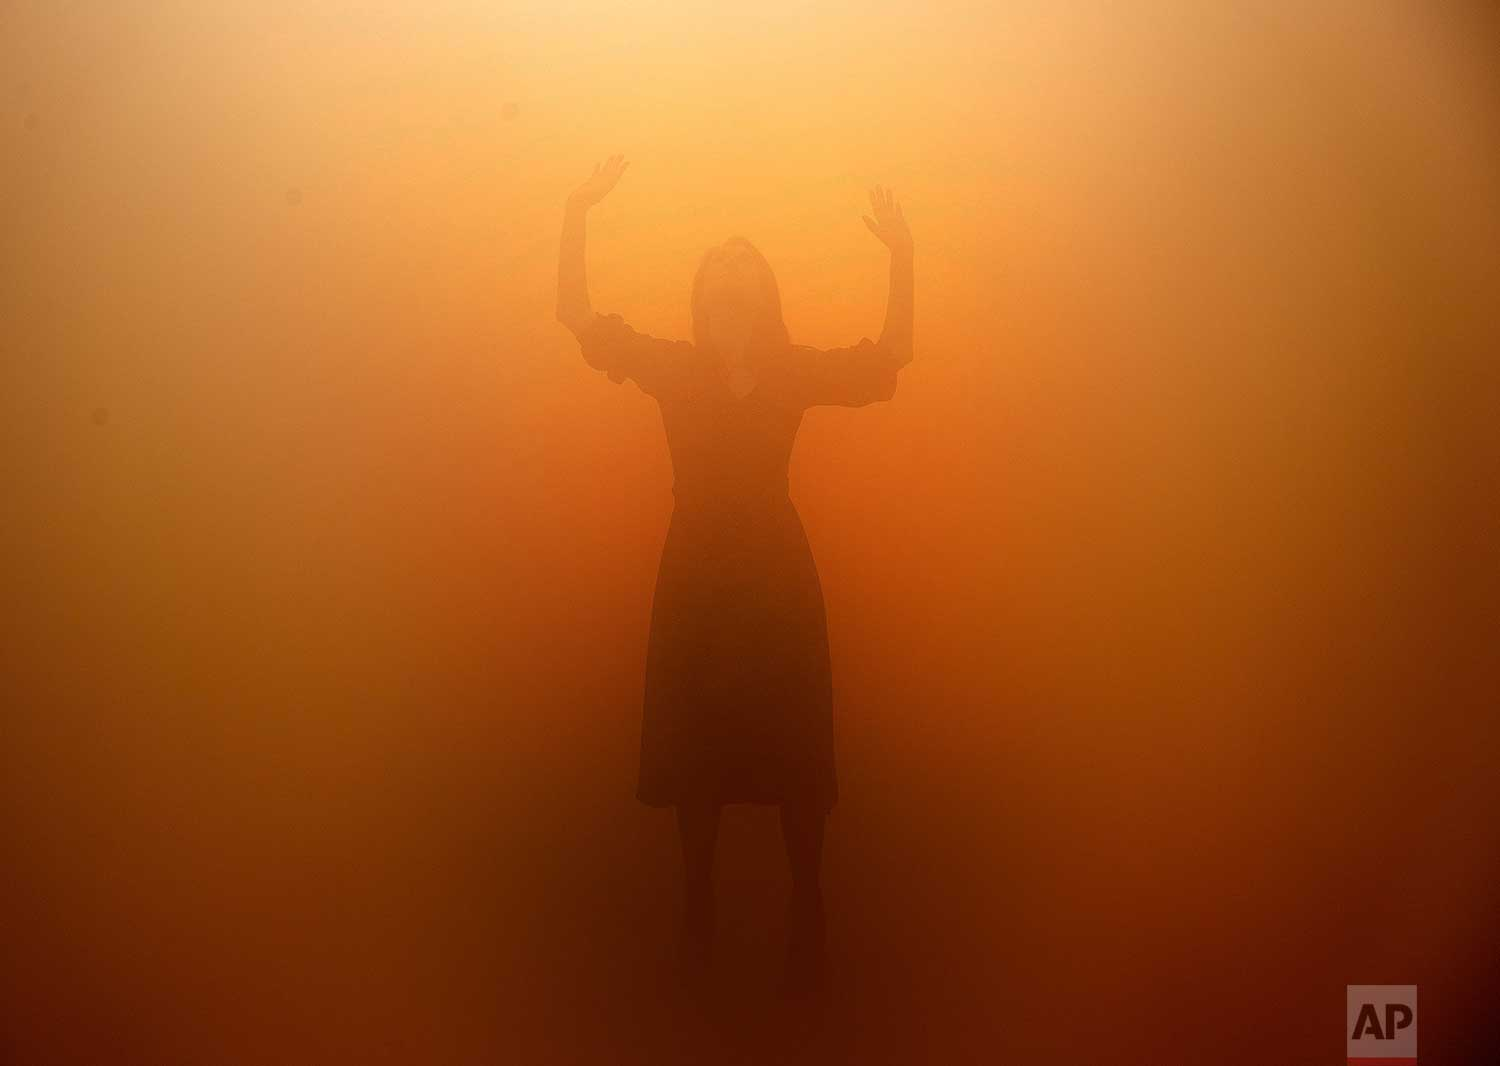 A visitor tries to orientate through a room full of fog called 'Your blind passenger' as part of the exhibition Olafur Eliasson: 'In real life' at the Tate Modern Gallery in London, Tuesday, July 9, 2019. The Tate Modern has brought together around 40 works of Eliasson spanning the last three decades, and are on display from July 11, 2019 until January 5, 2020. (AP Photo/Frank Augstein)